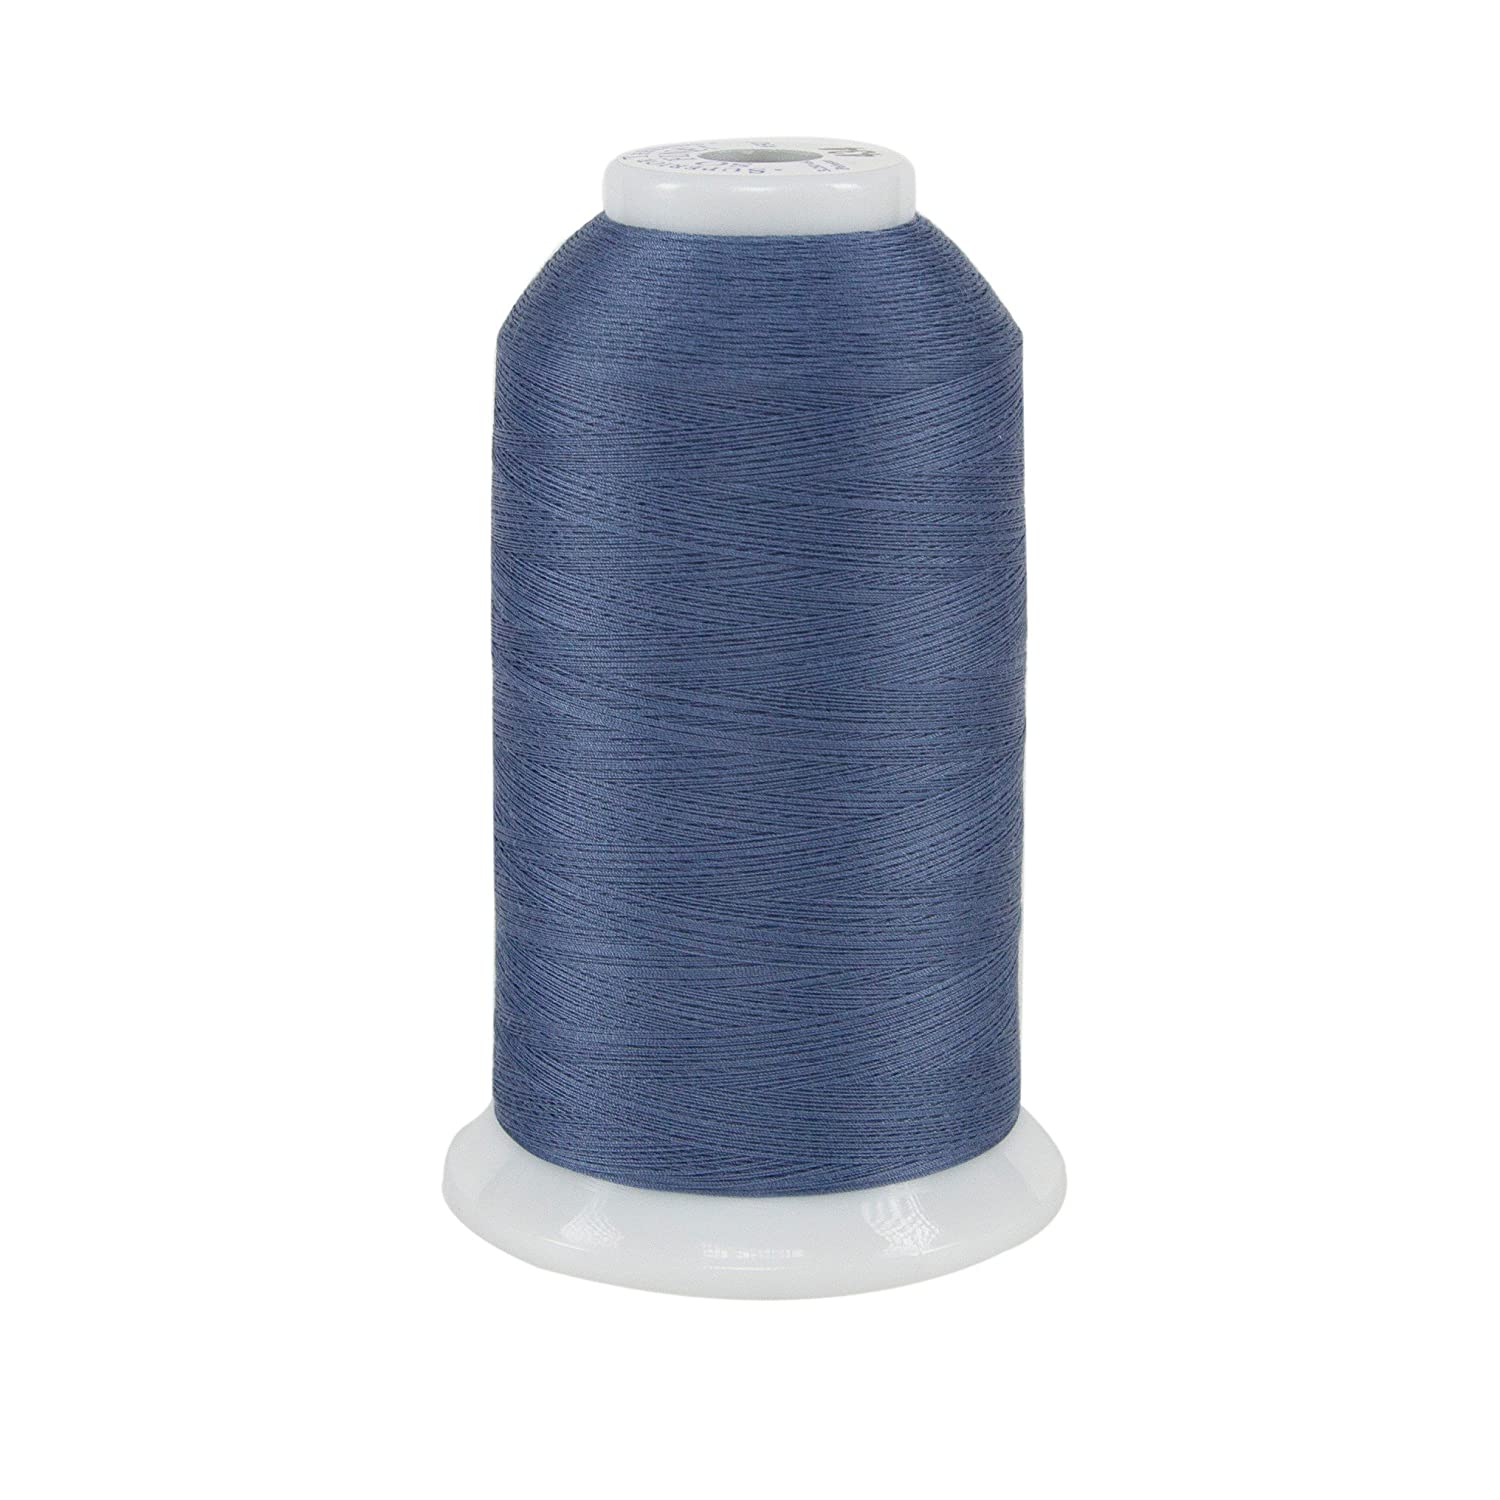 3280 yd Superior Threads 11602-412 So Fine Hot Chilies 3-Ply 50W Polyester Thread